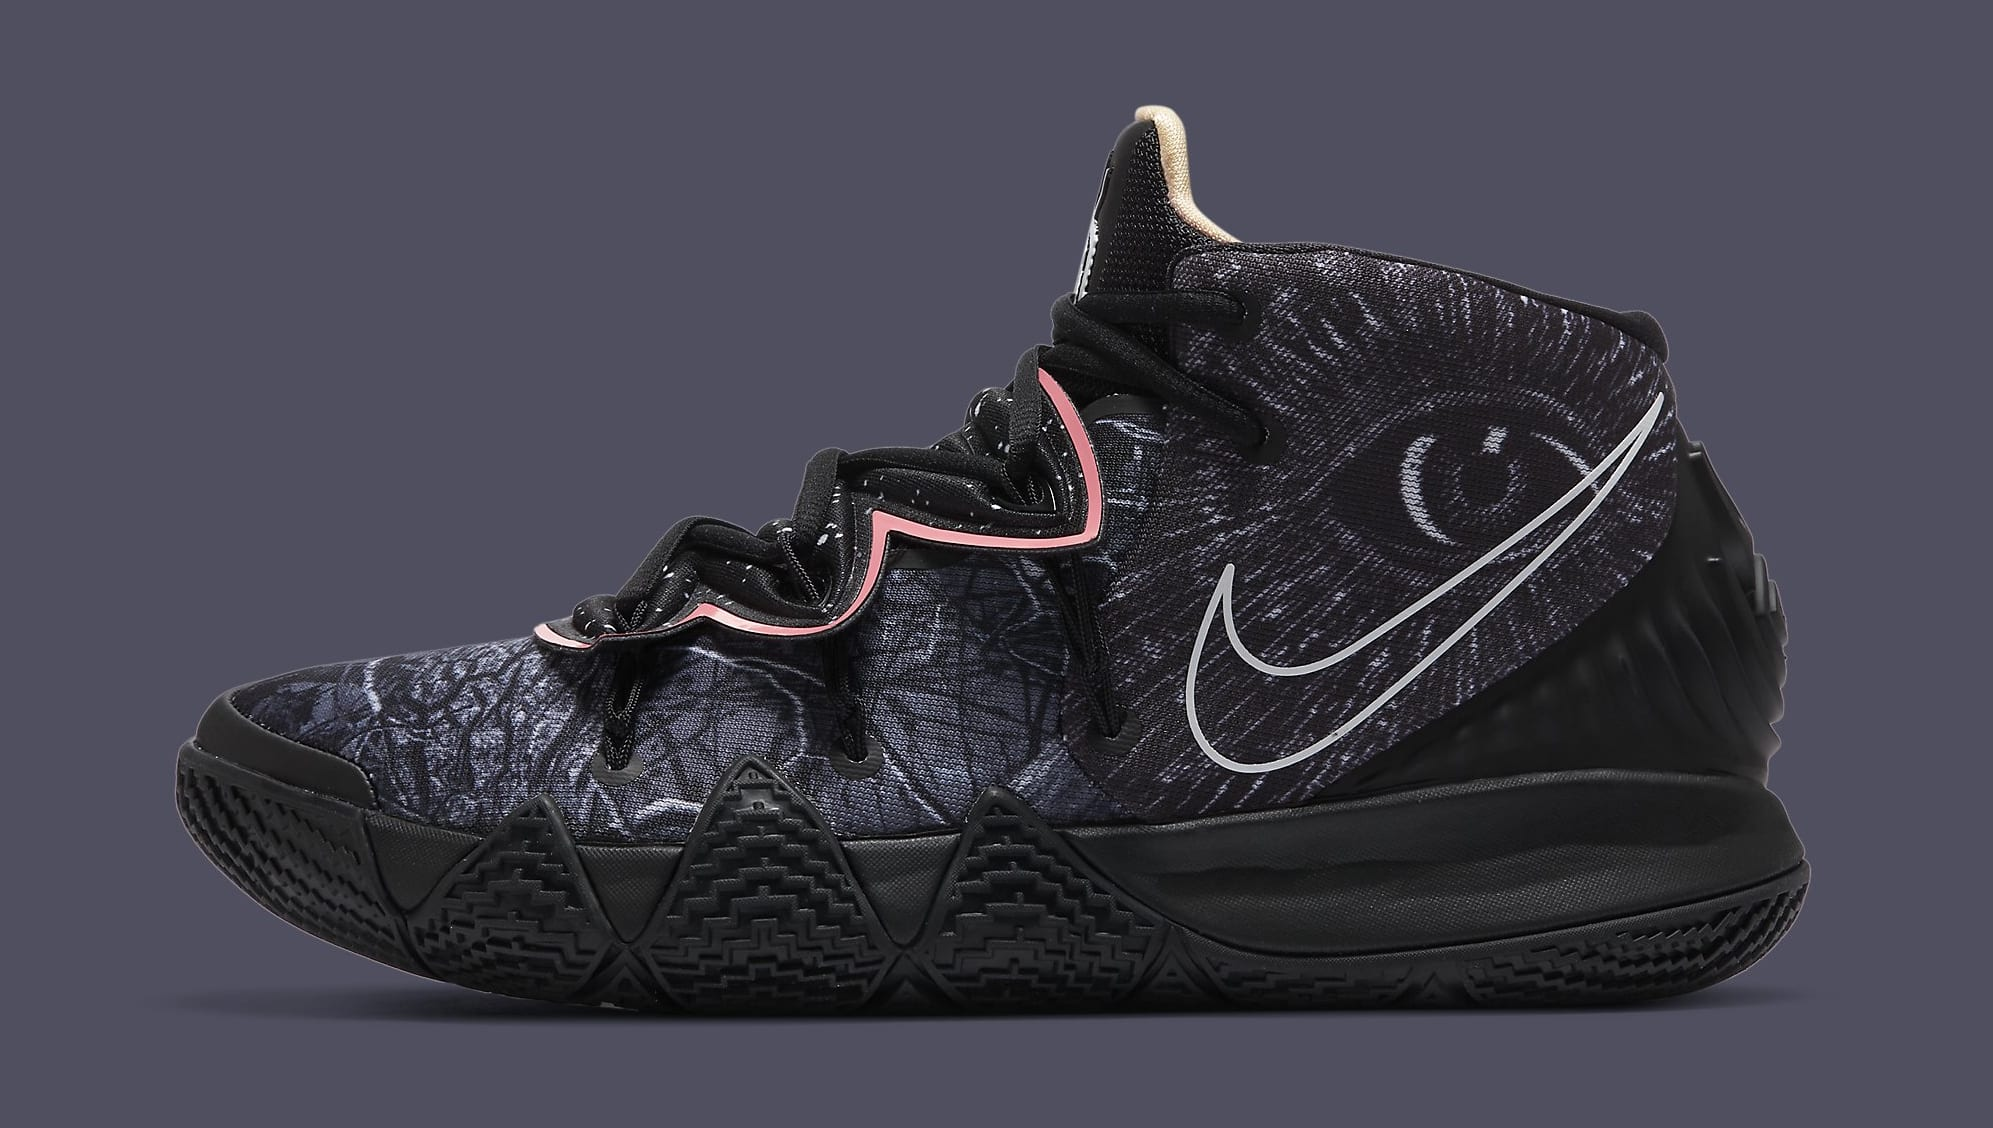 Nike Kyrie Hybrid S2 EP CT1971-001 Lateral